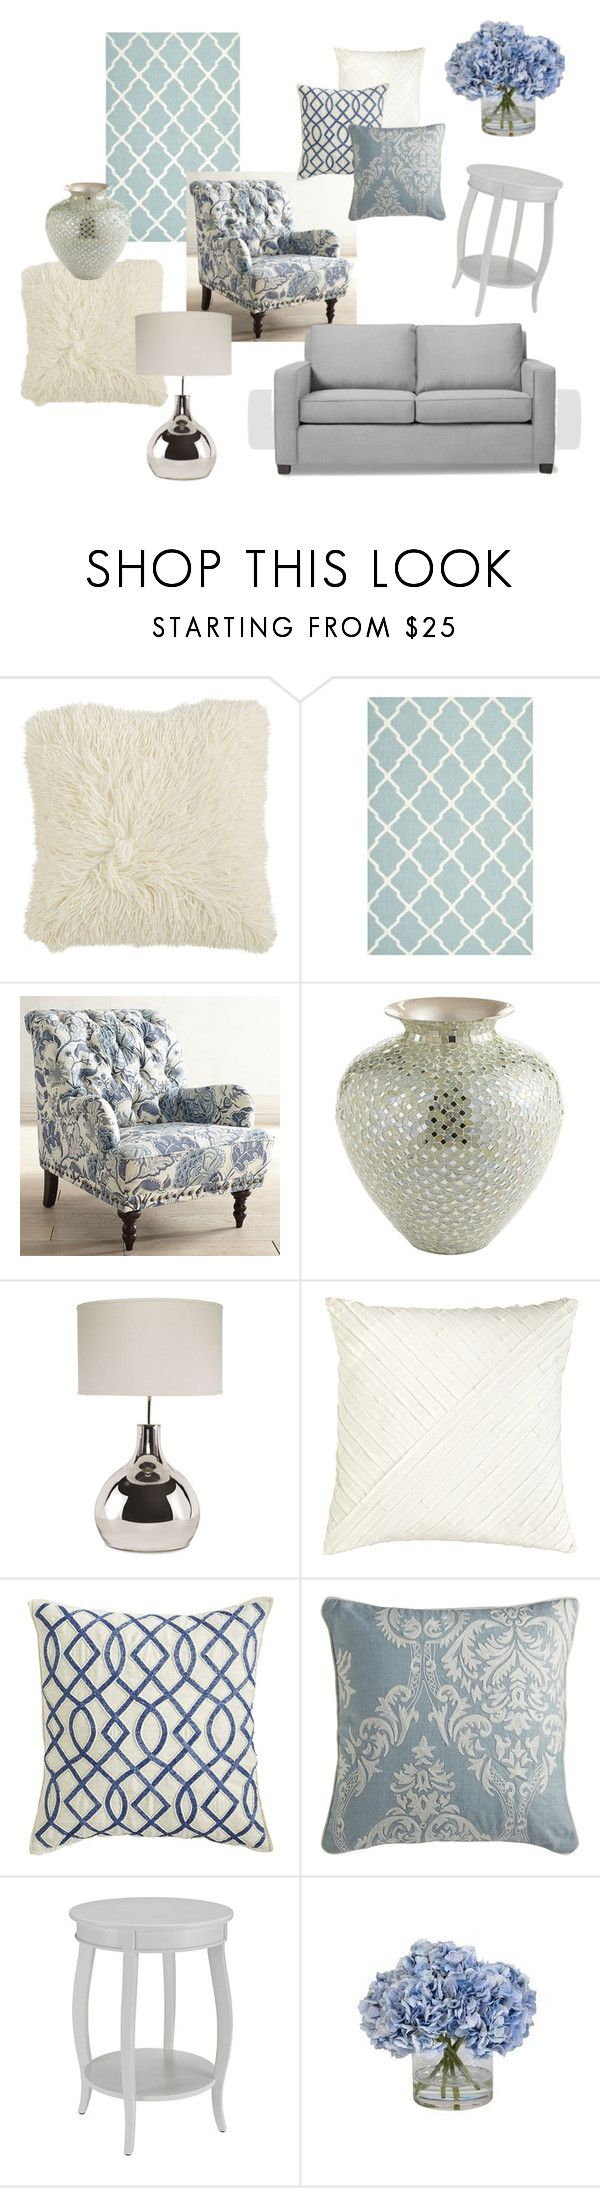 """""""Living Room Inspiration"""" by leximeoww on Polyvore featuring interior, interiors, interior design, home, home decor, interior decorating, Pier 1 Imports, Safavieh, Home Decorators Collection and Ethan Allen"""